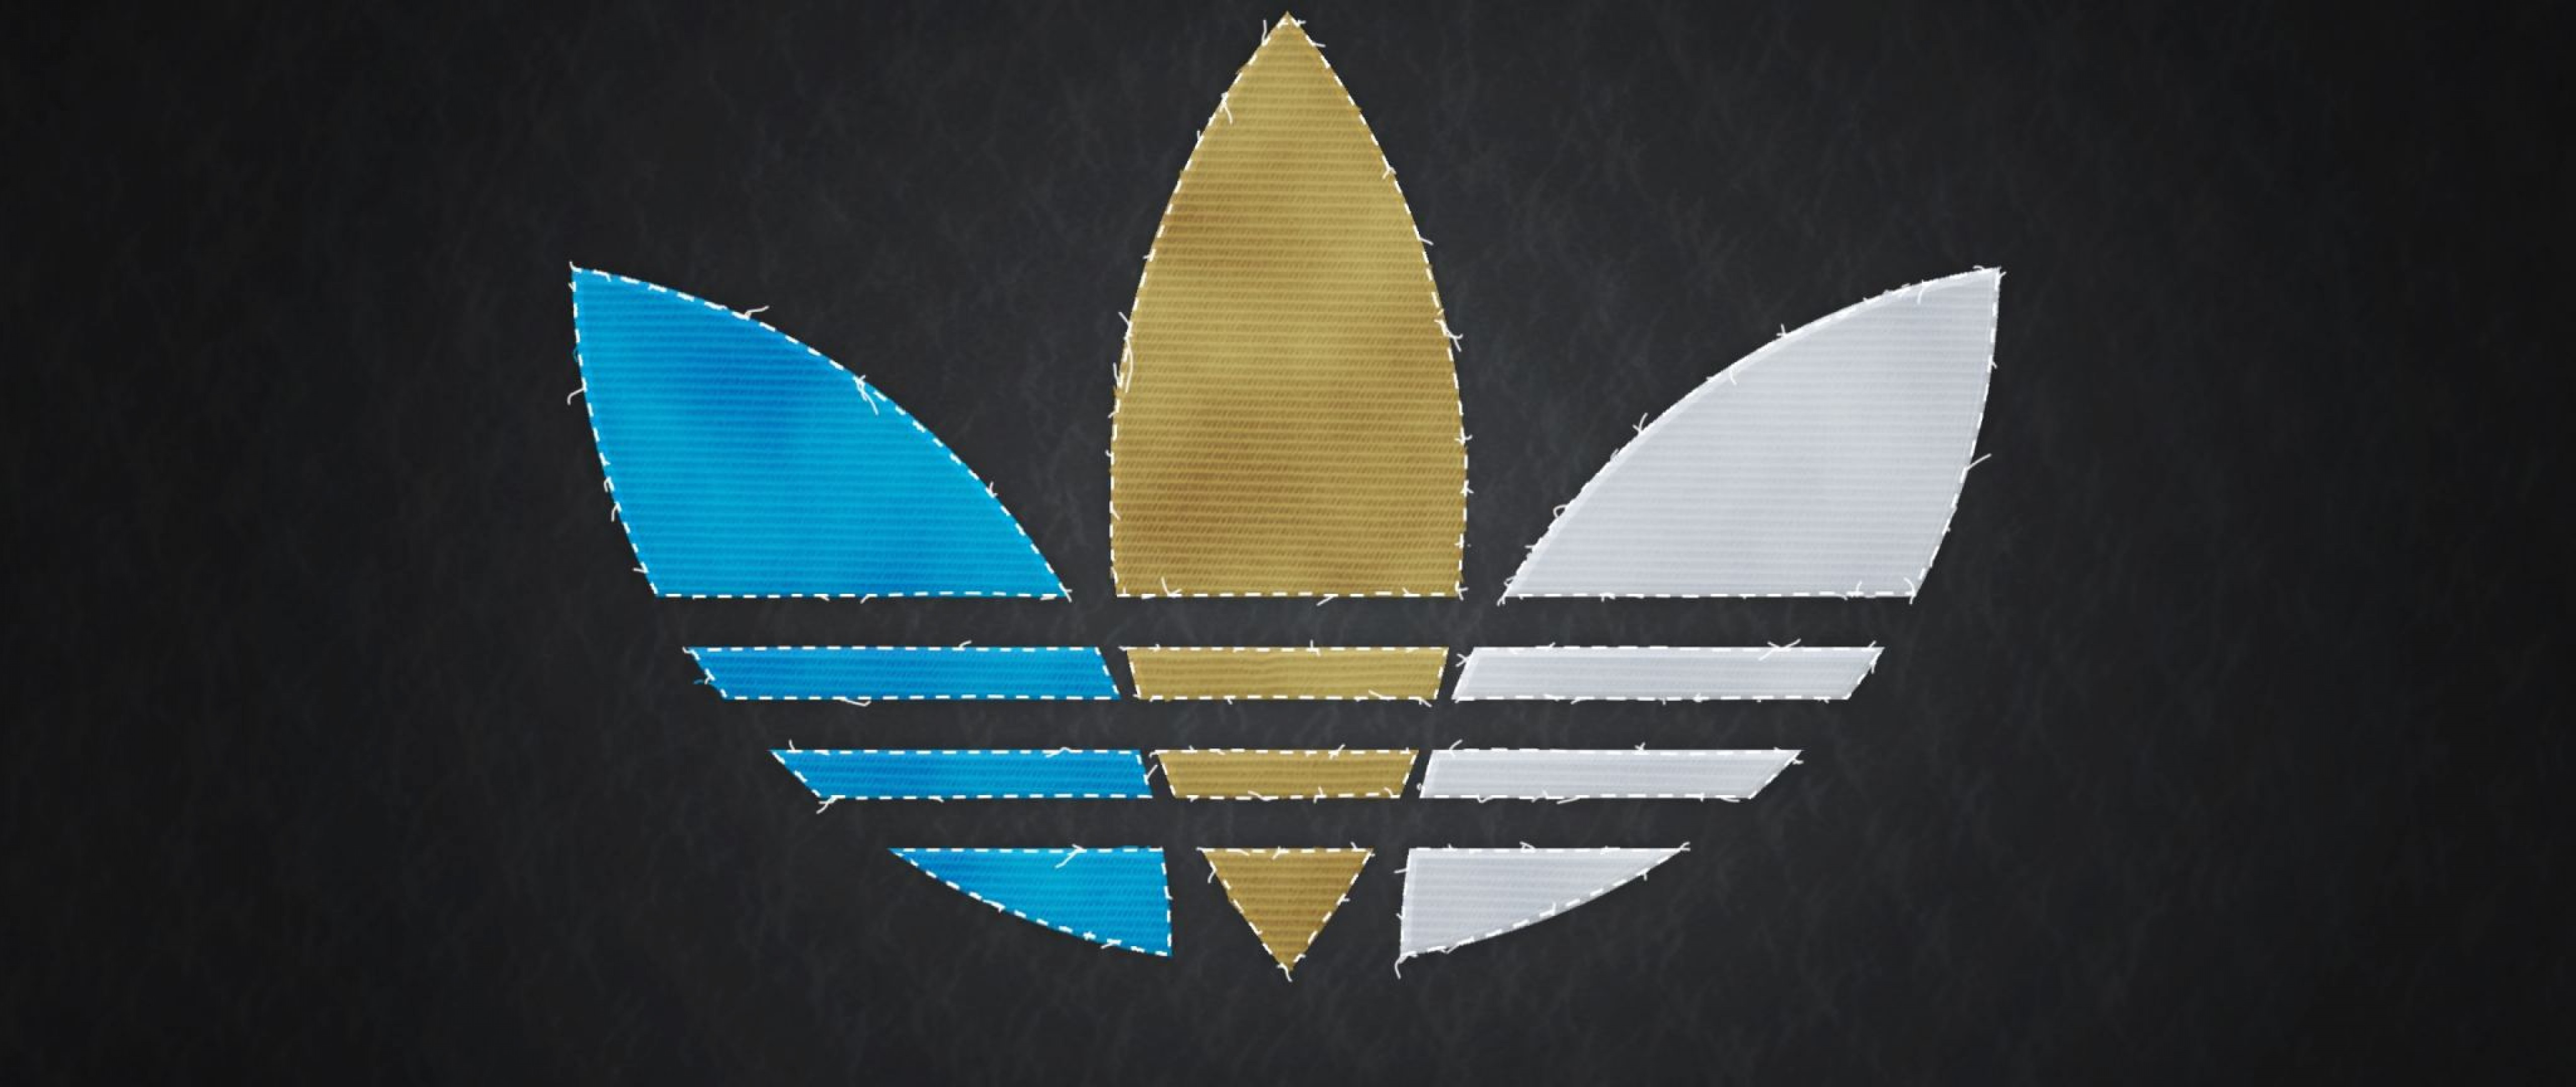 Download Adidas Logo Full Hd Background Wallpaper For Desktop And